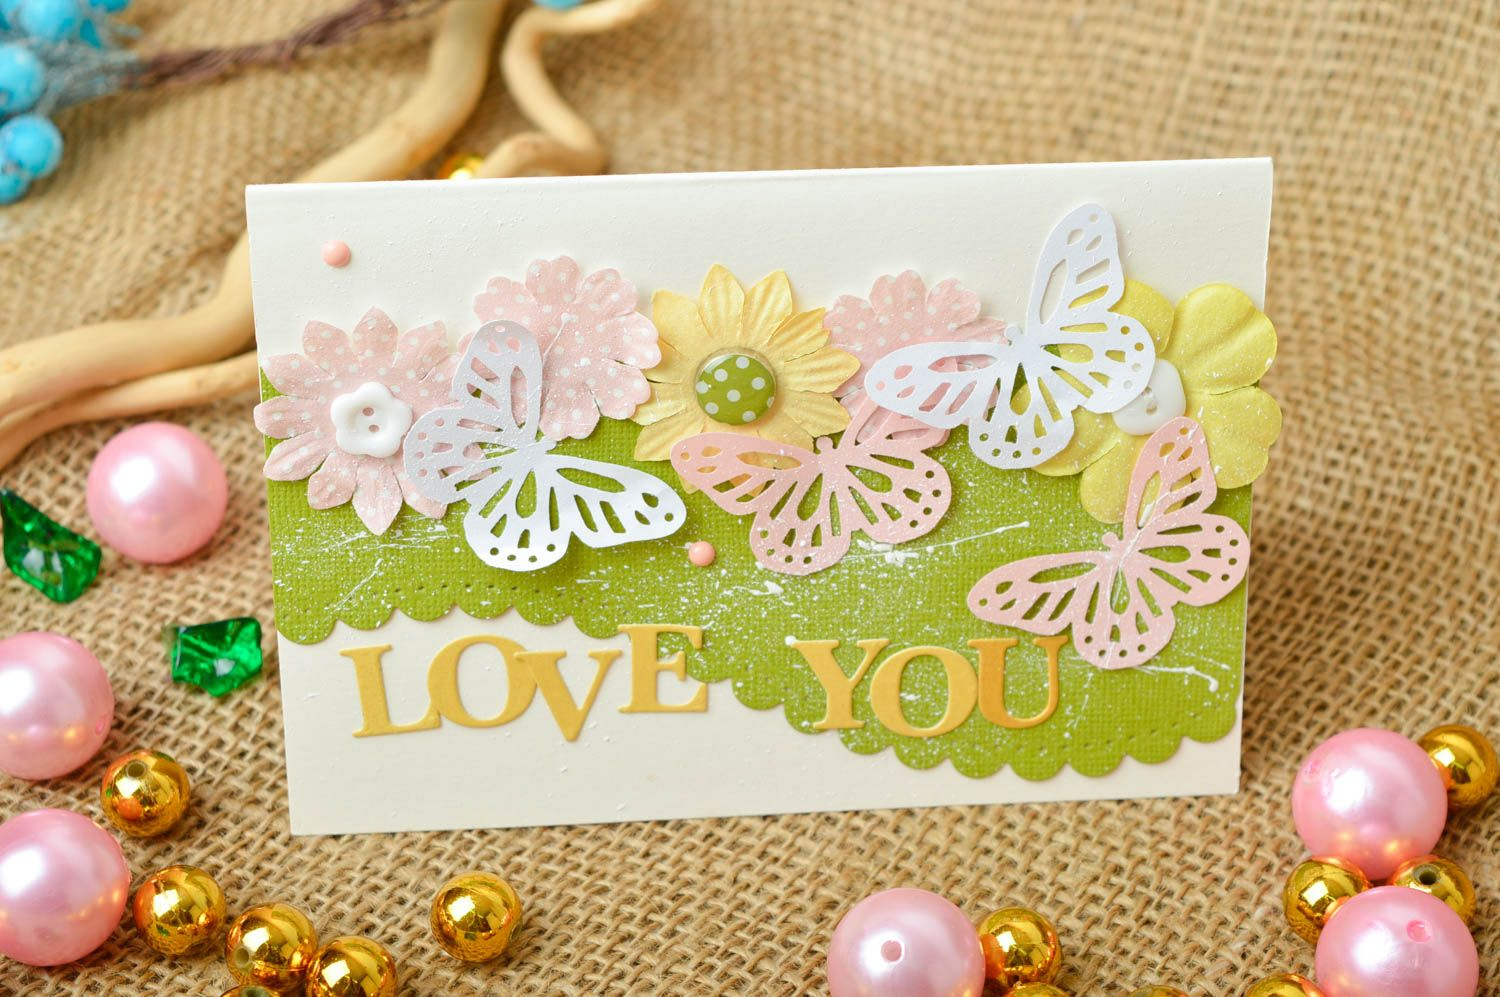 Homemade postcard greeting card love you card souvenir ideas cool gifts photo 1